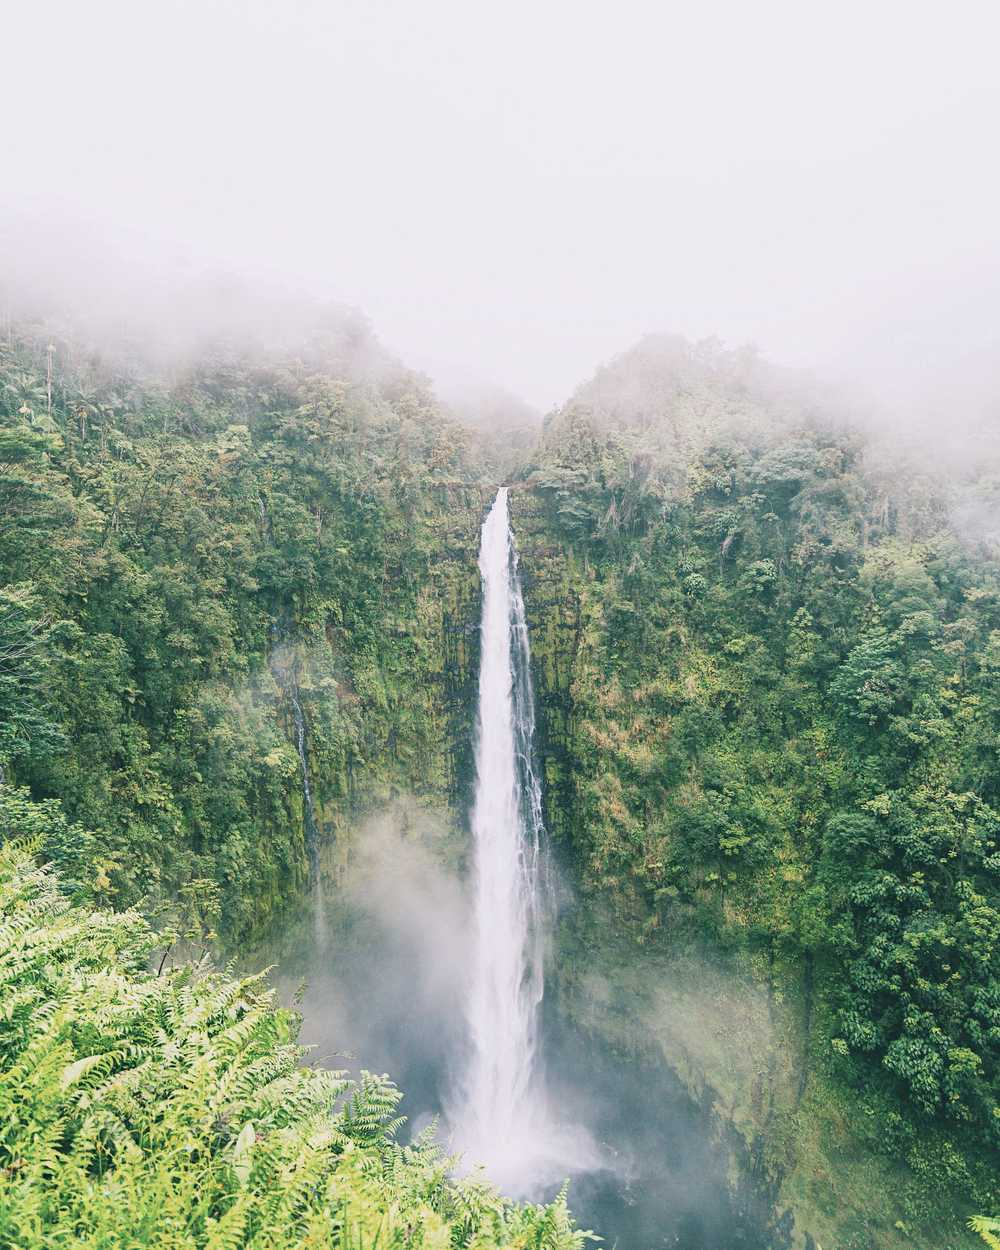 Foggy Akaka falls in Big island